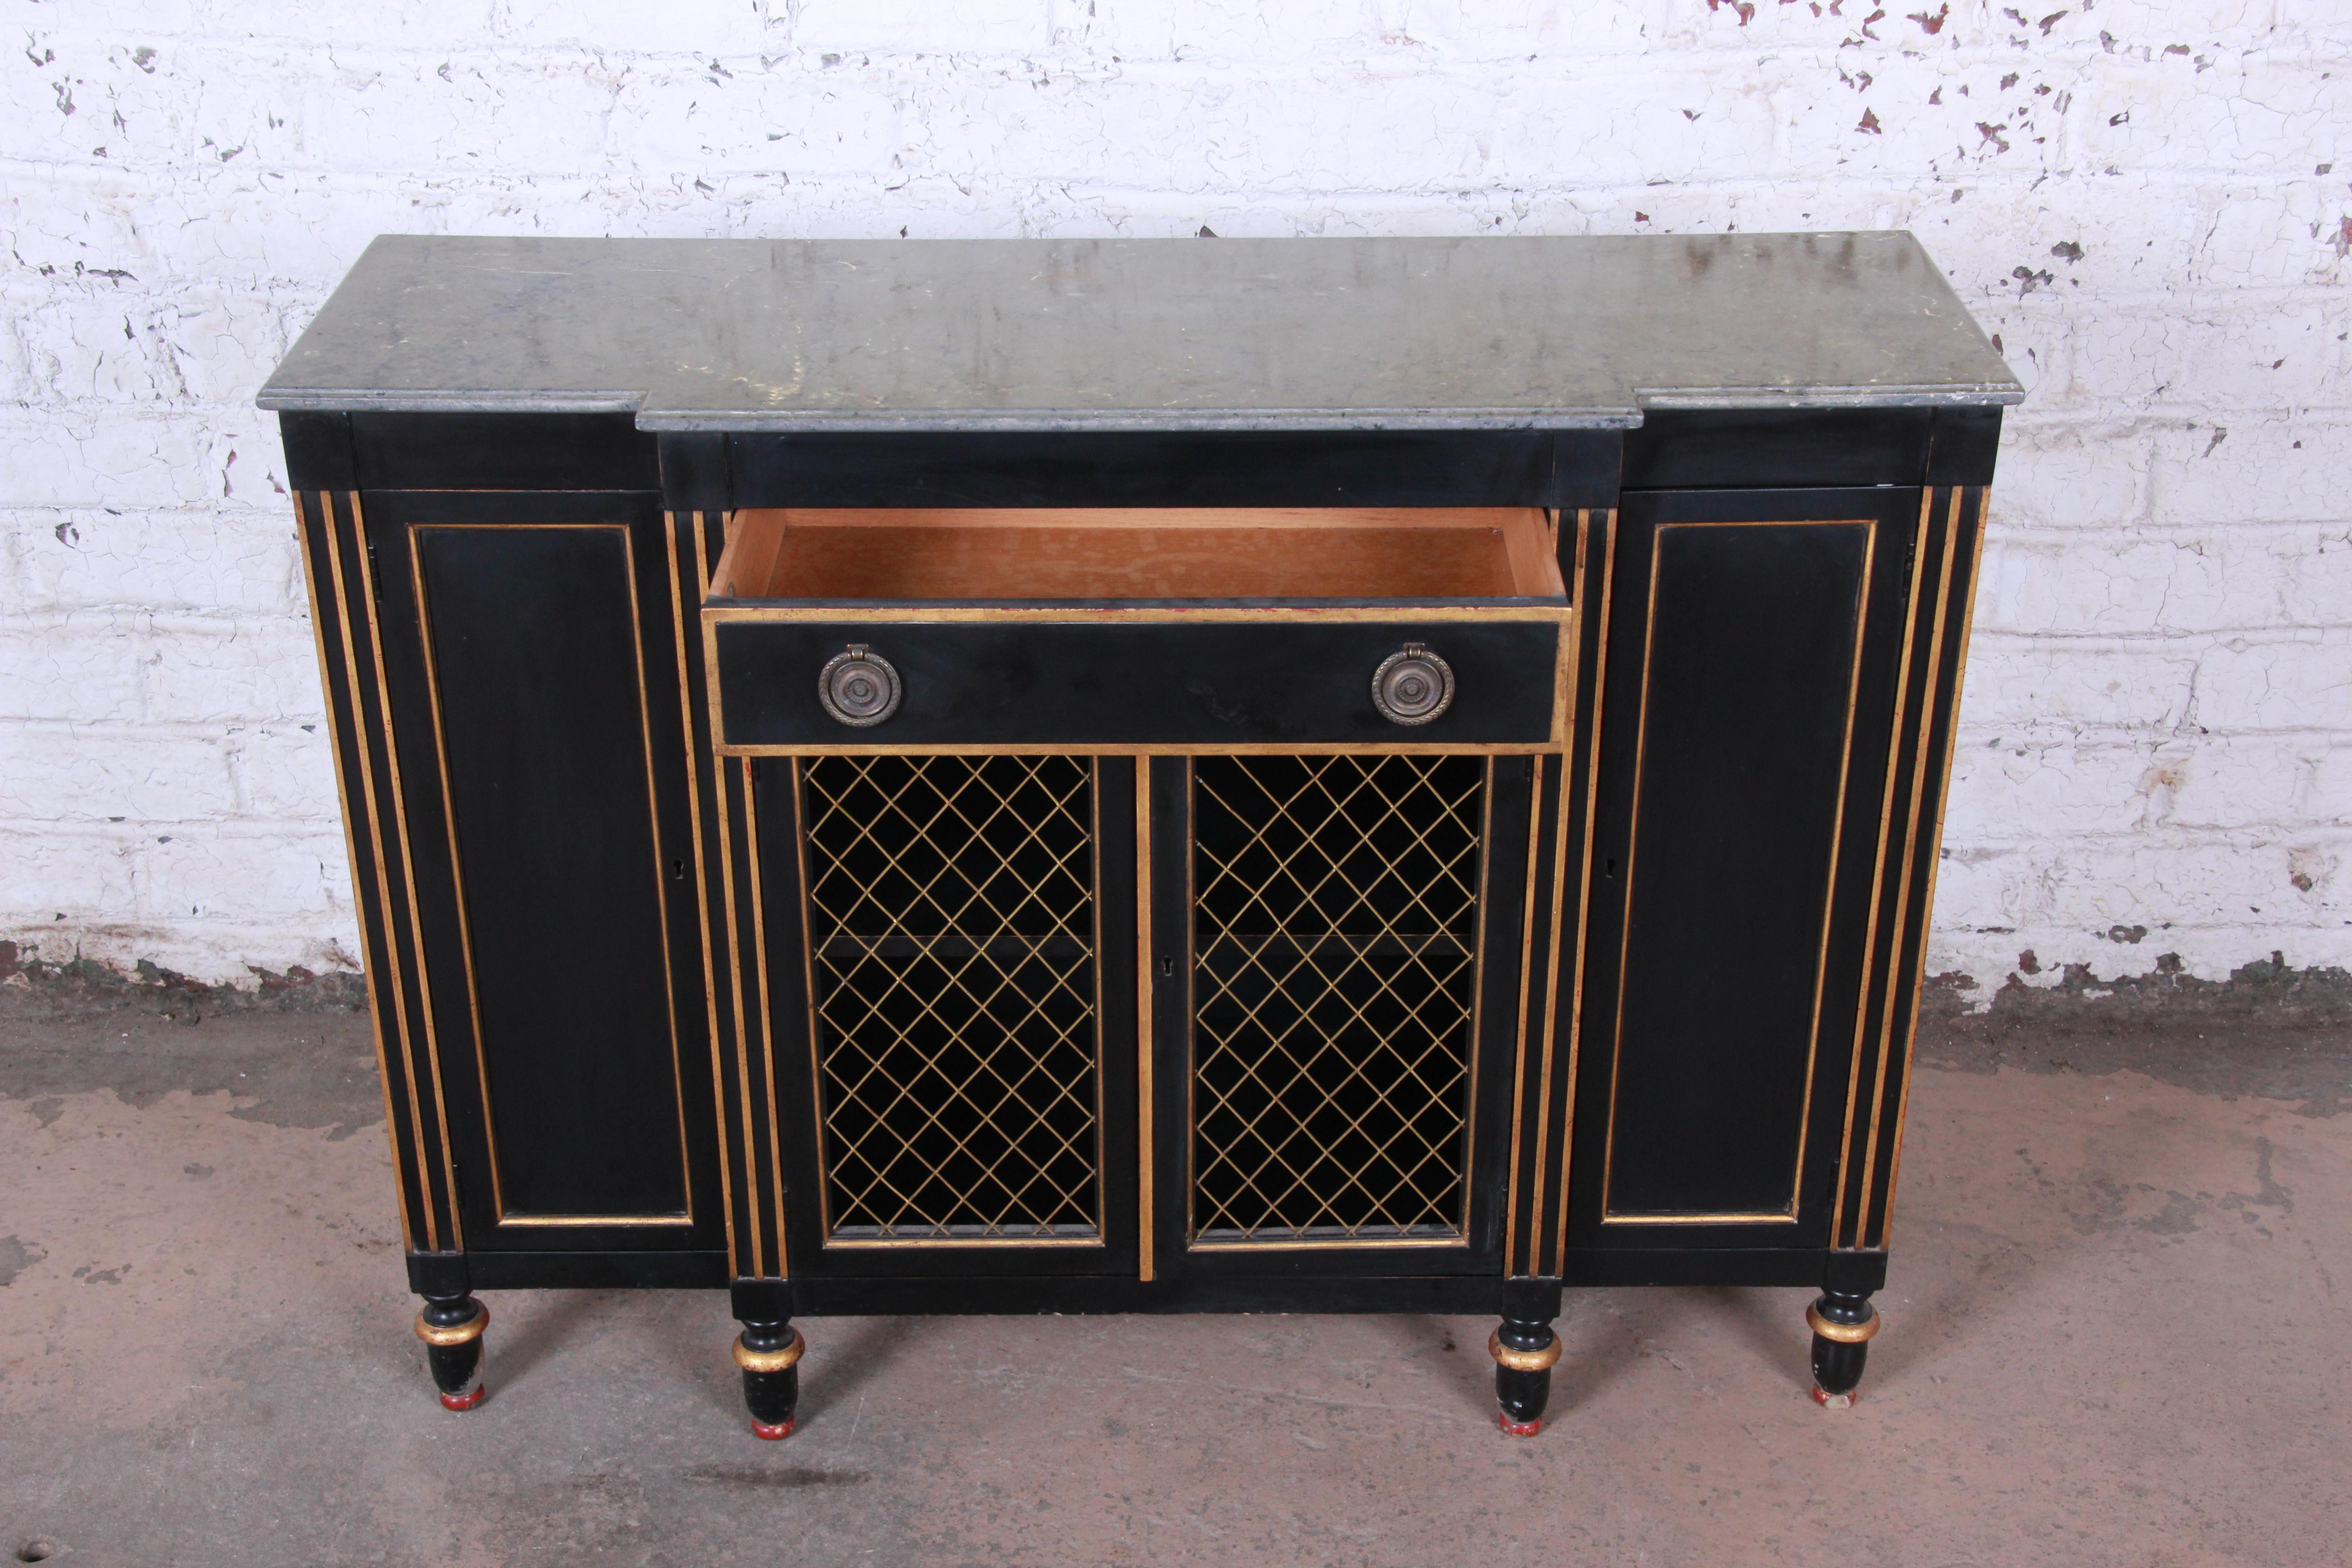 Baker Furniture Neoclassical Sideboard Credenza or Bar Cabinet Chairish